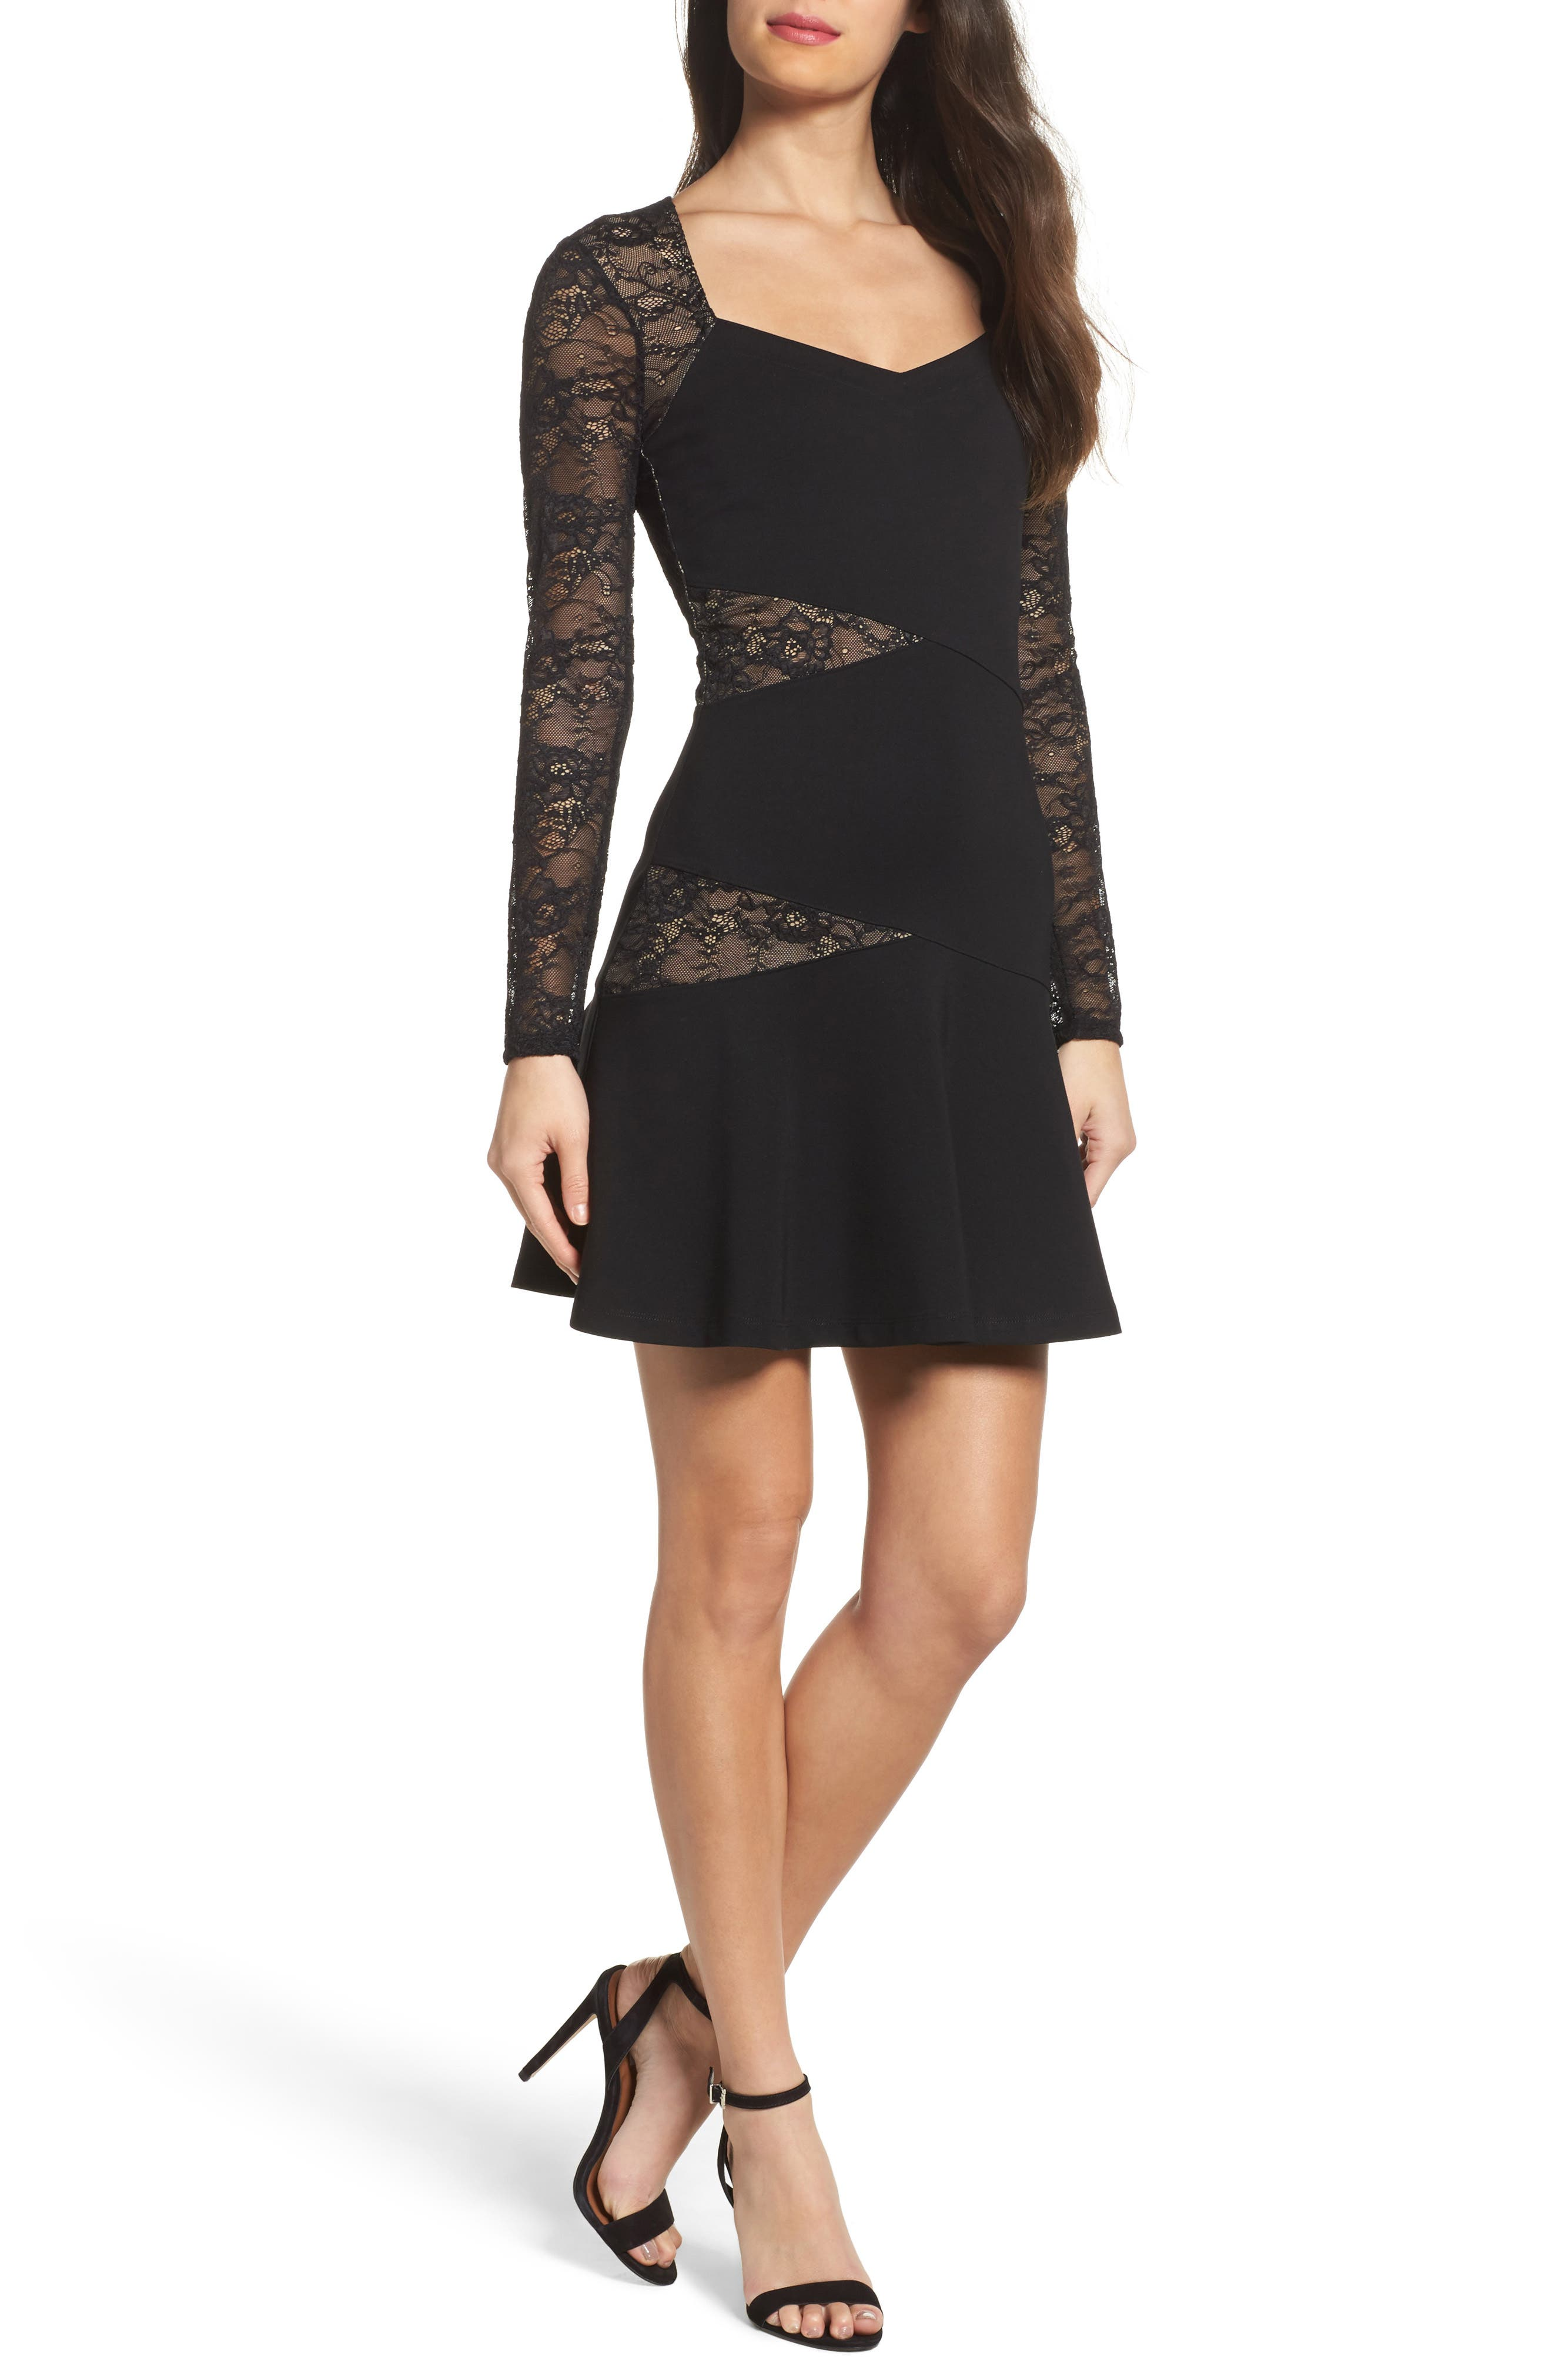 L'Arc Ponte Knit Fit & Flare Dress,                             Main thumbnail 1, color,                             Black